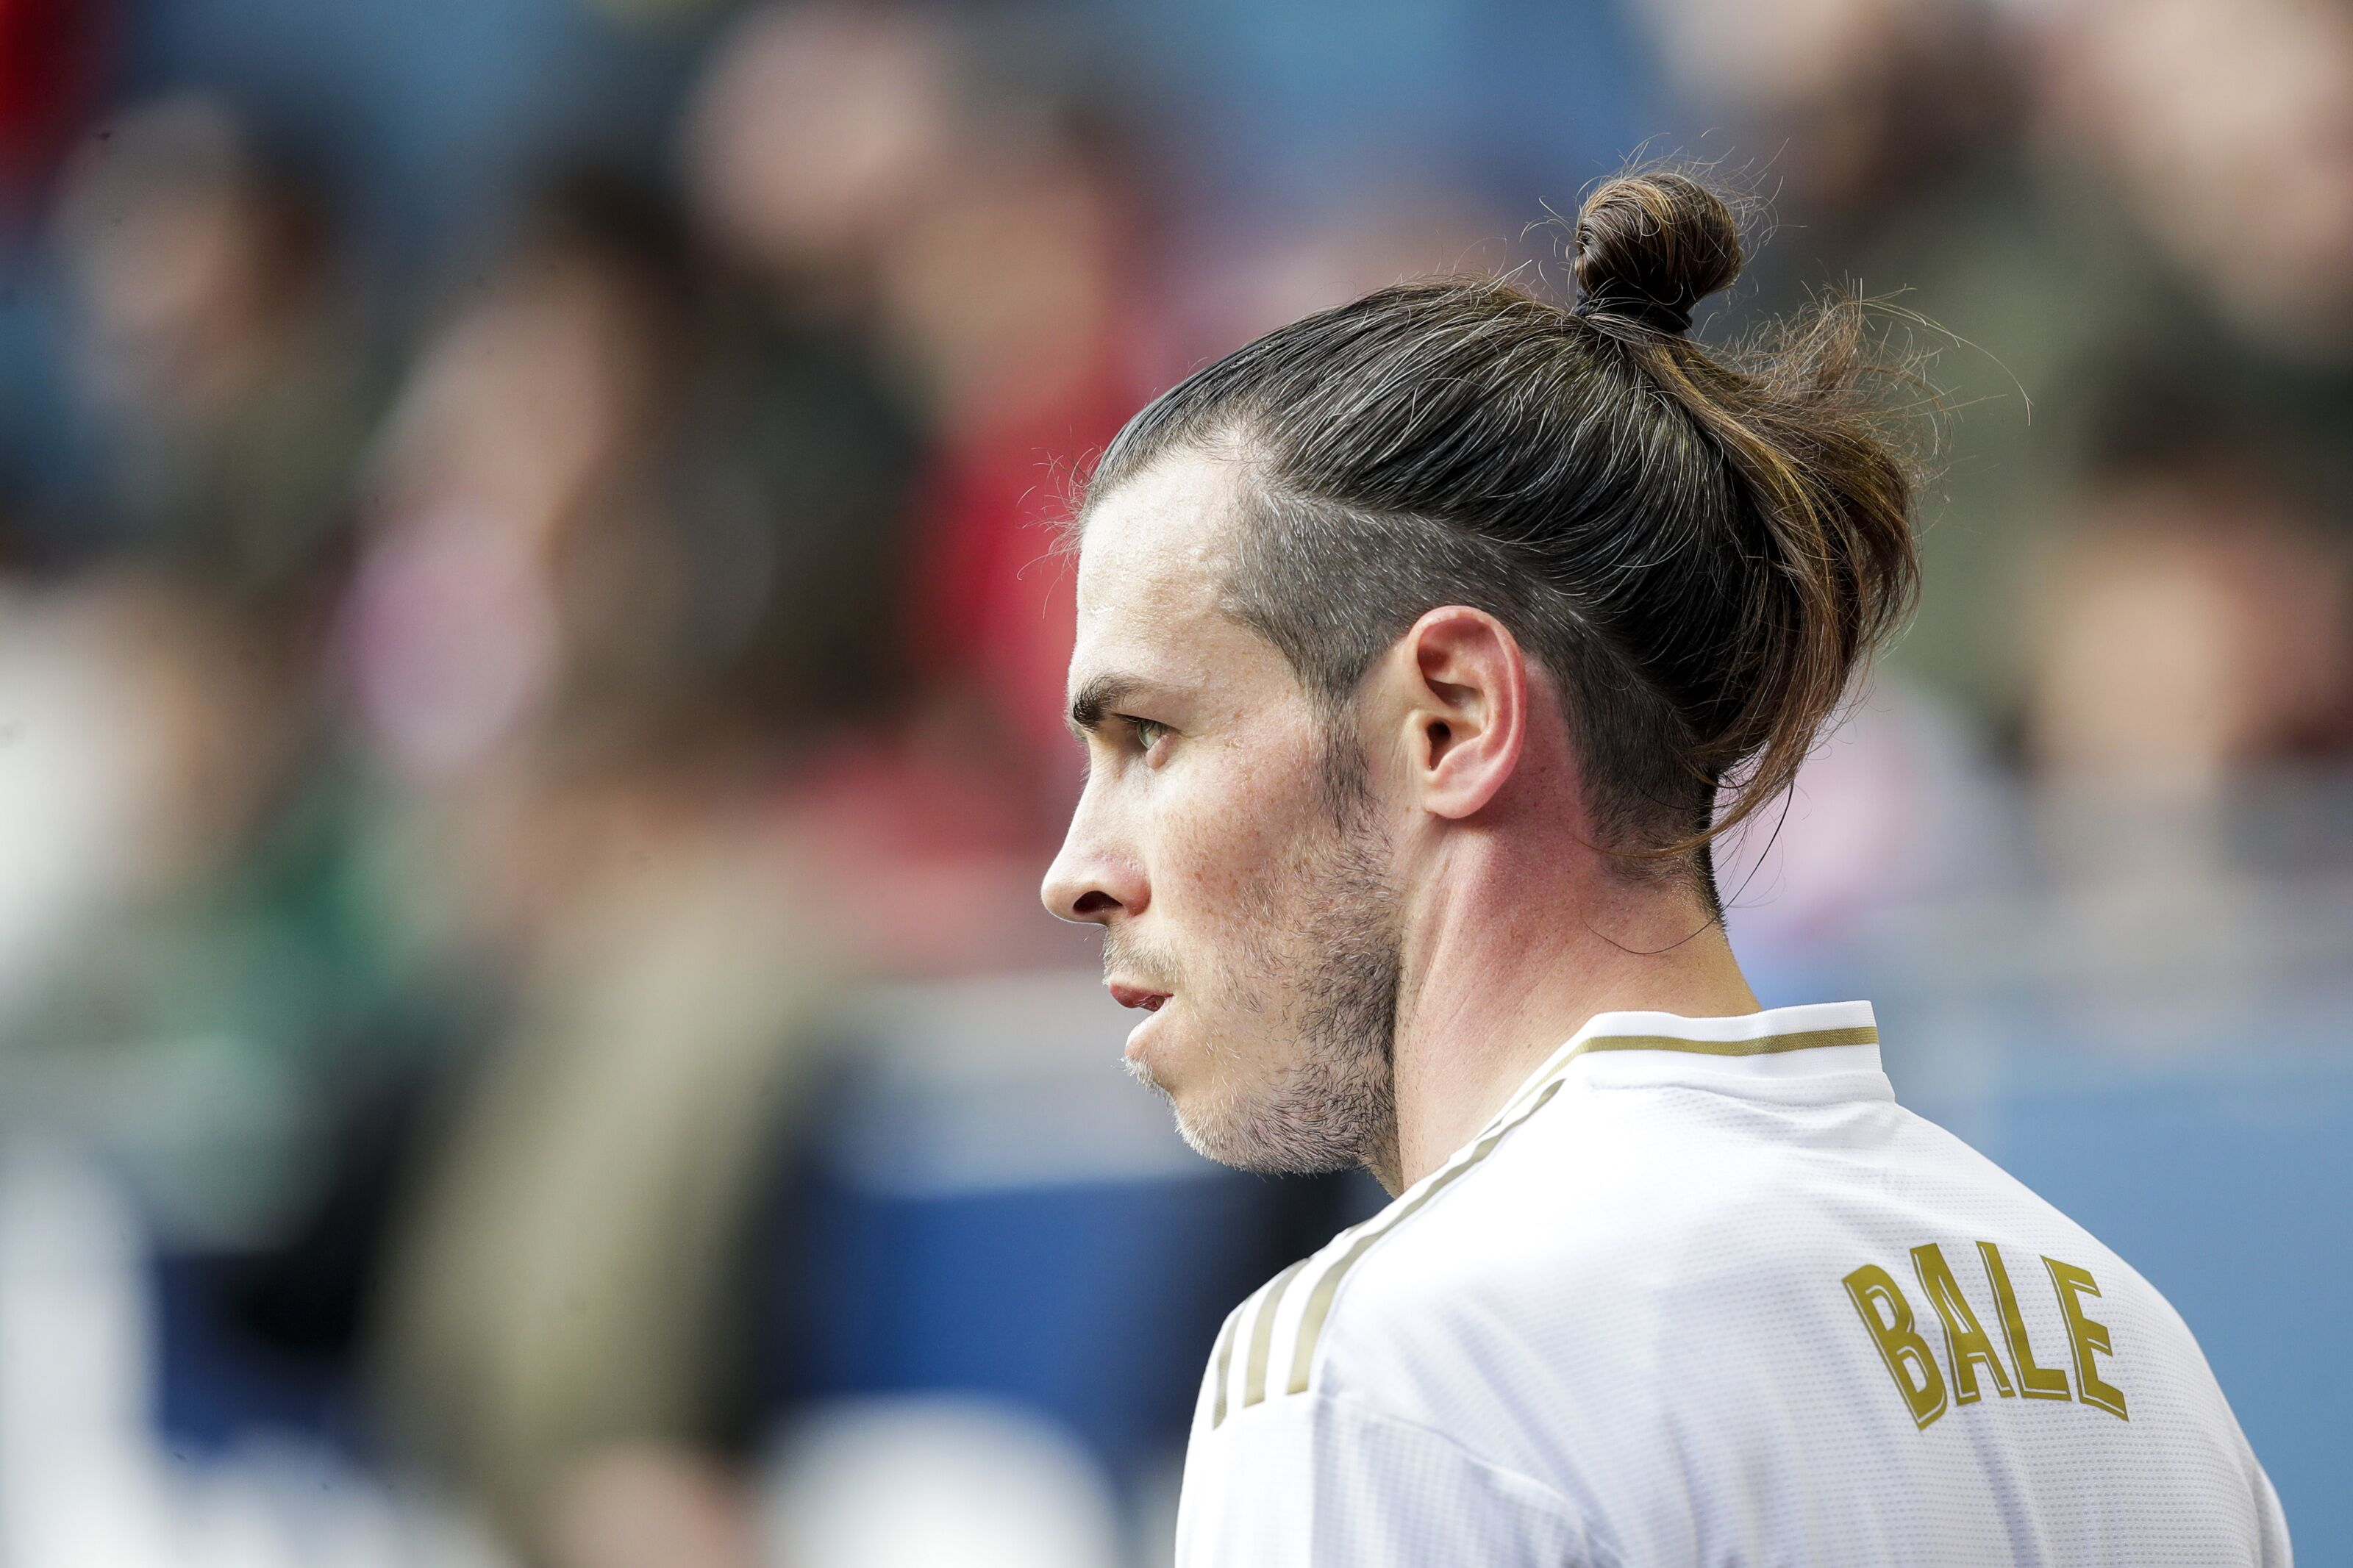 It's time for Real Madrid and Gareth Bale to go their separate ways